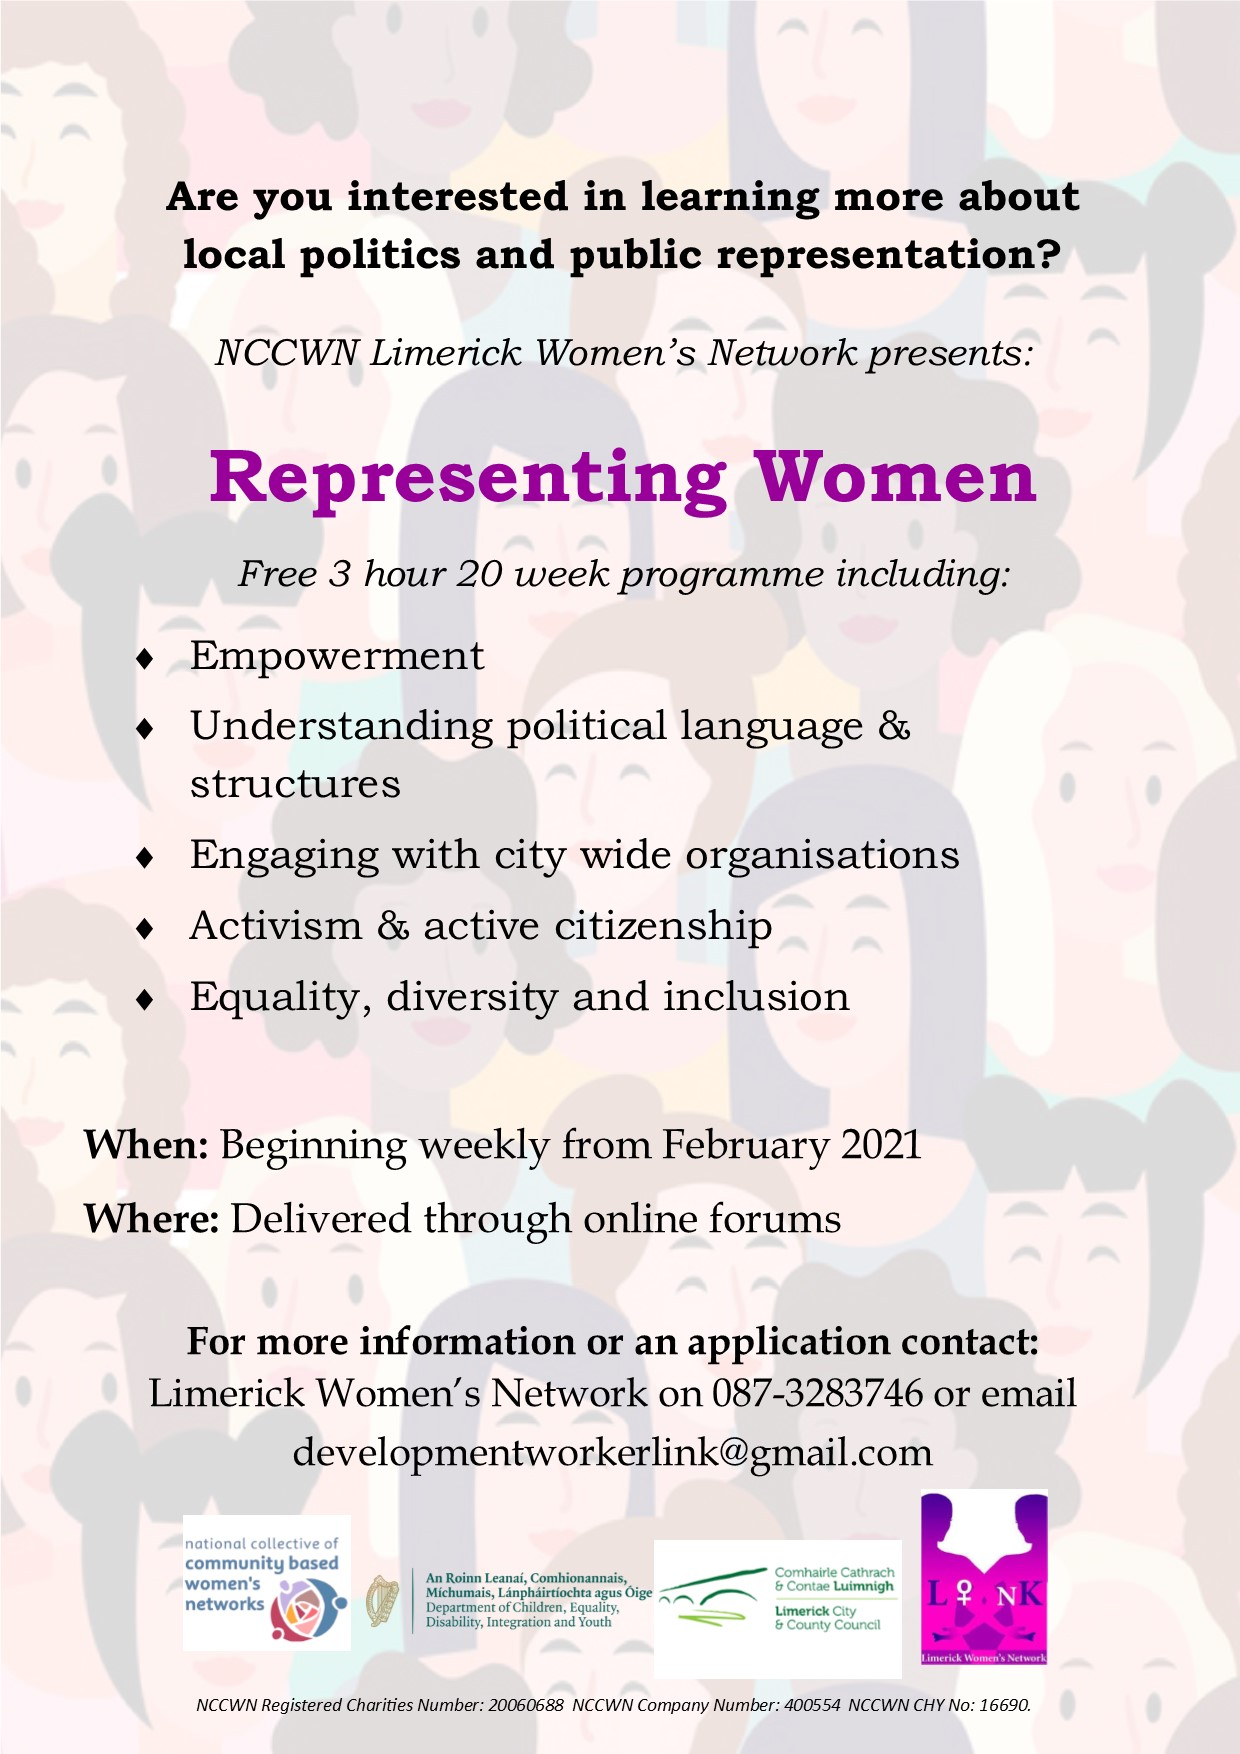 NCCWN Limerick Representing Women Poster Online programme on Local Politics and Public Representation